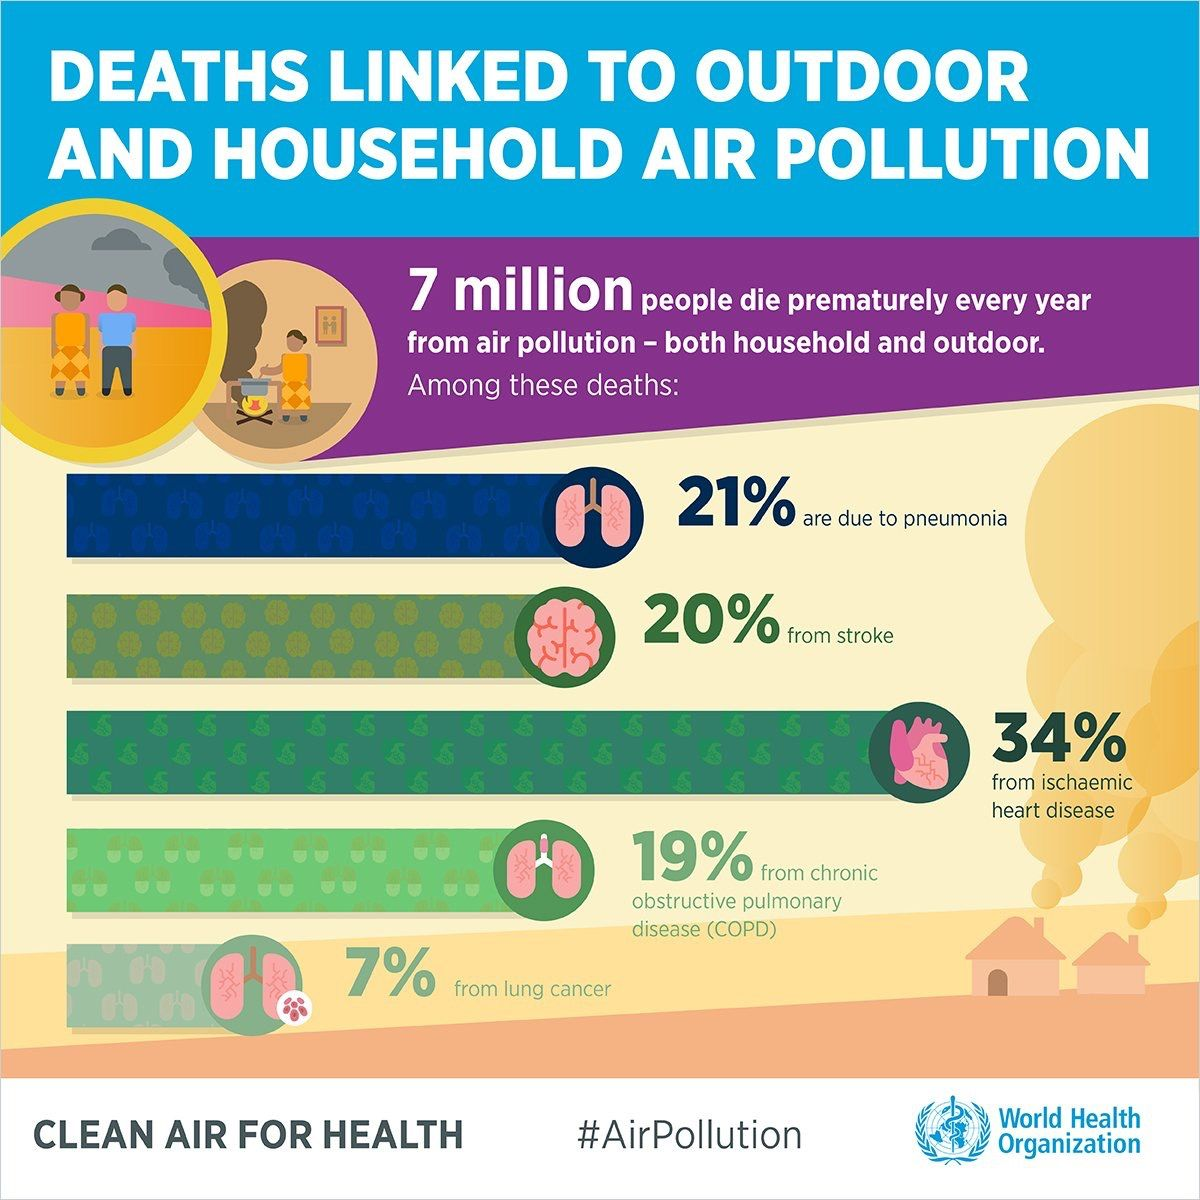 Pin by AlAdodi on Miscellaneous Air pollution, Sick